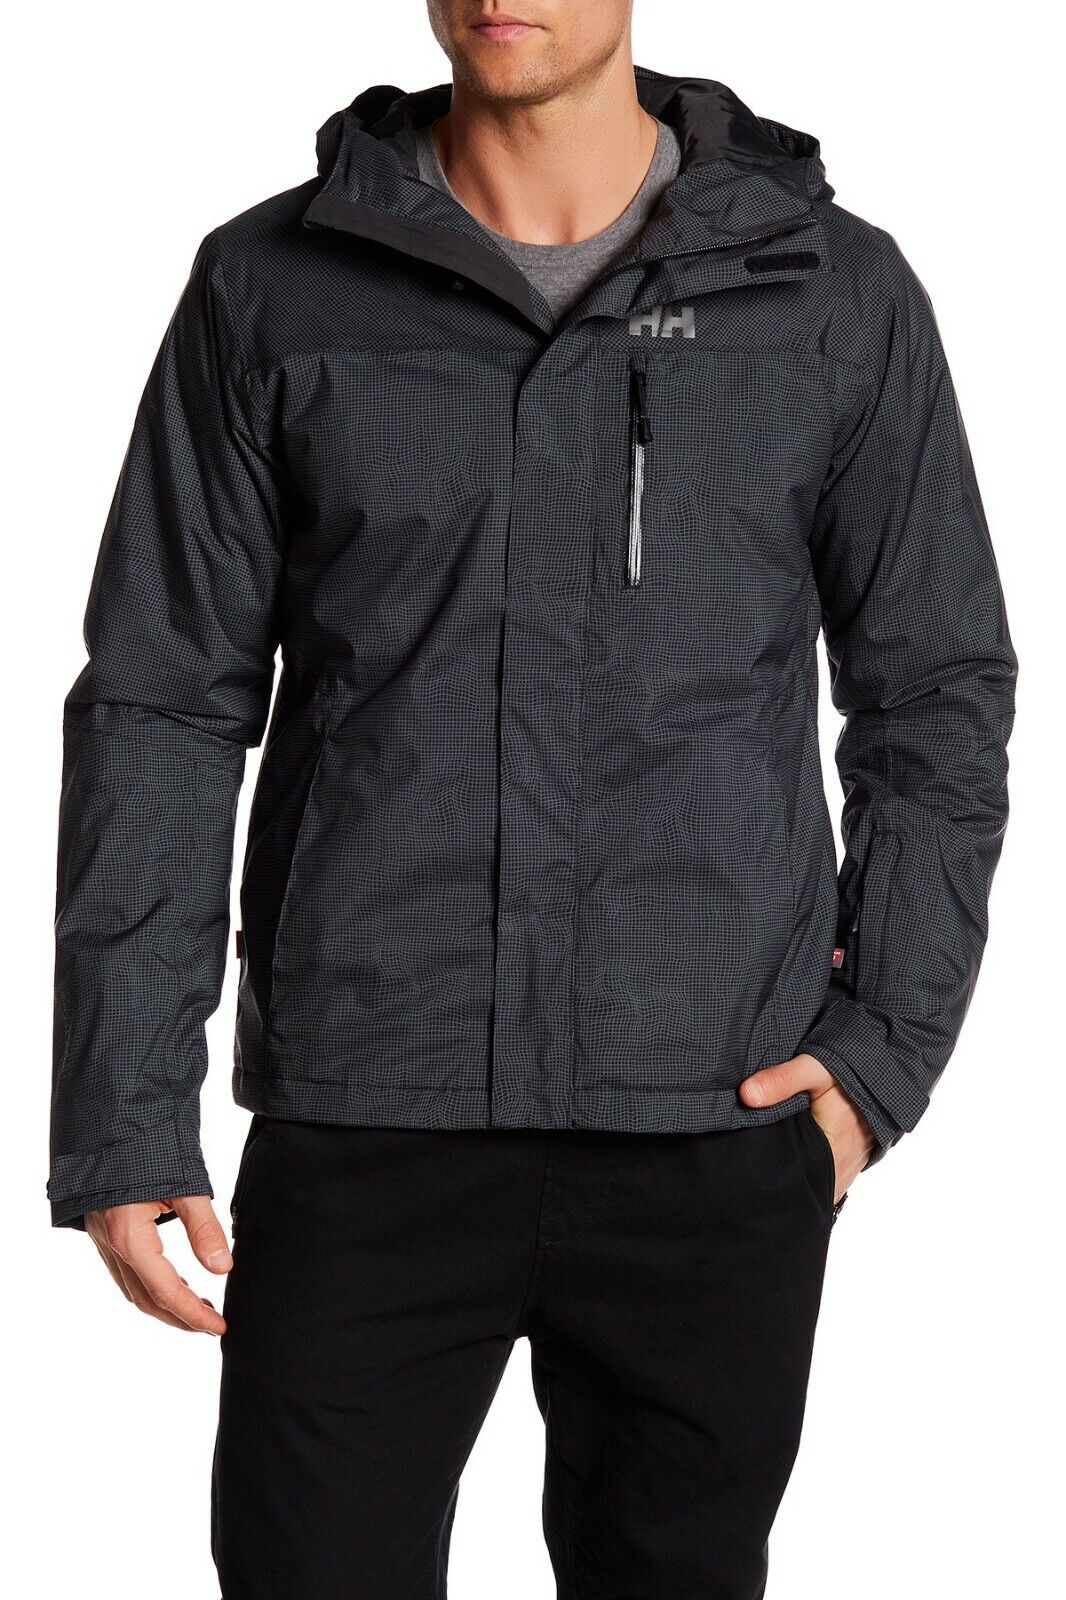 Helly Hansen Men's Vertigo Ski Jacket Insulated Hooded – Black Check L Clothing